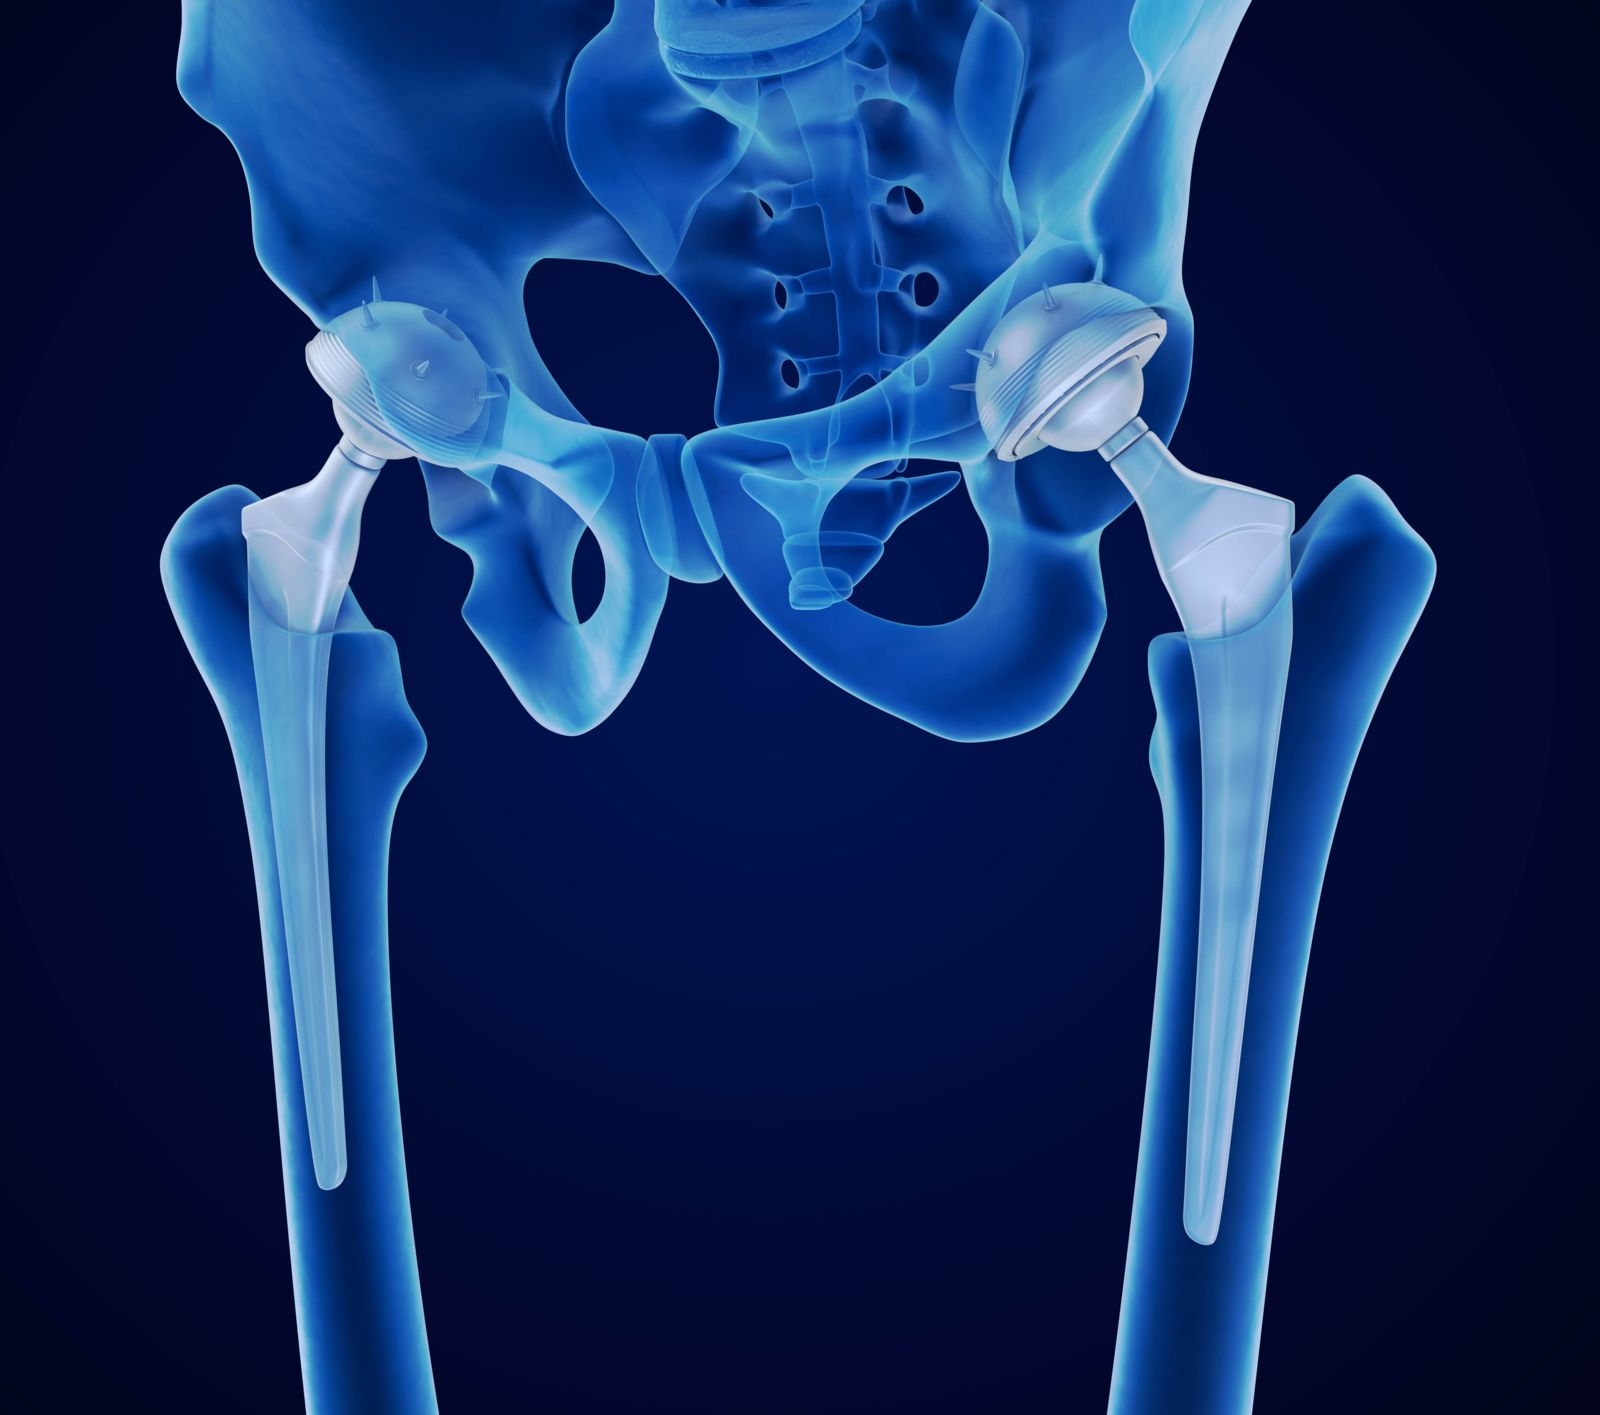 DePuy Pinnacle Metal-On-Metal Hip Implant